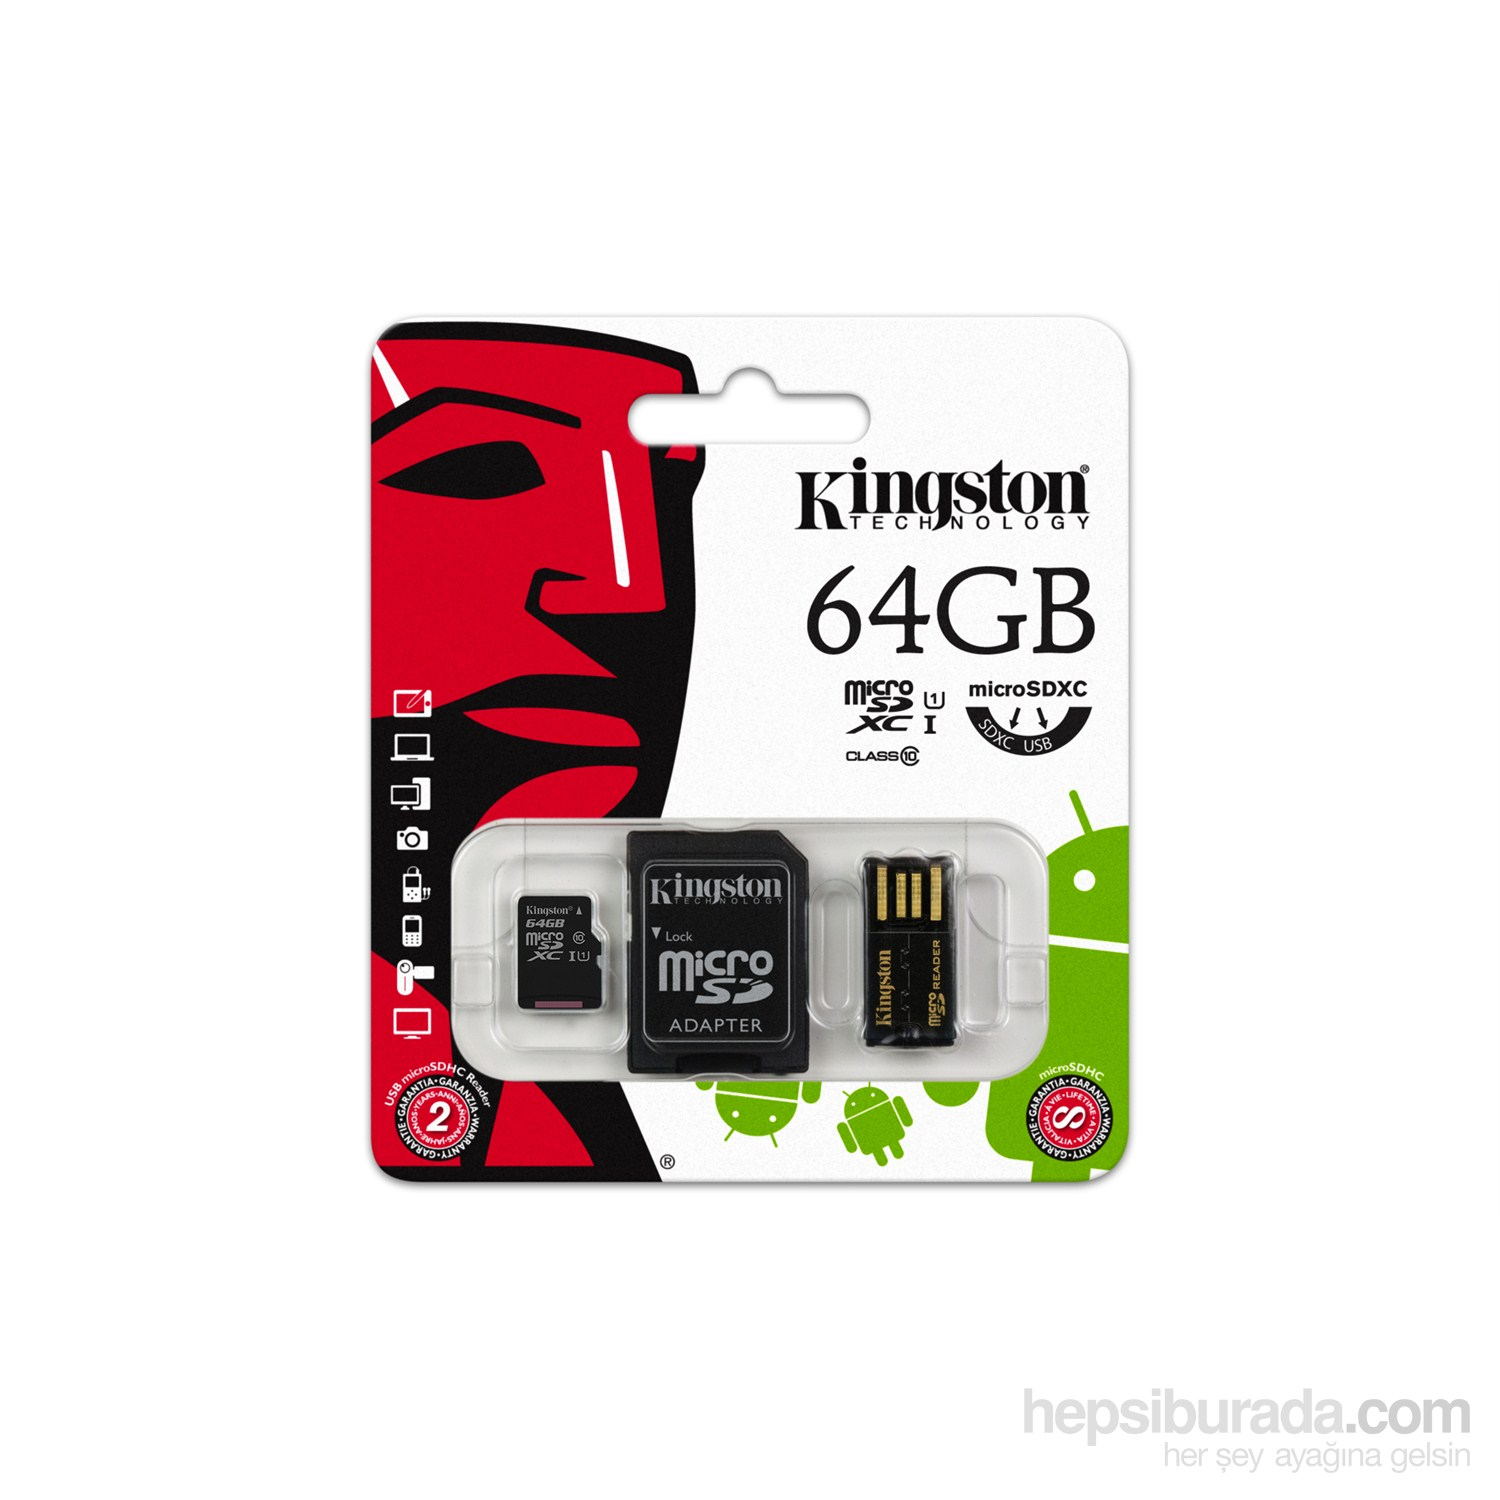 Kingston 64GB Mobility Kit MicroSD Class 10 Sd + Usb Adaptör Kit Hafıza Kartı MBLY10G2/64GB